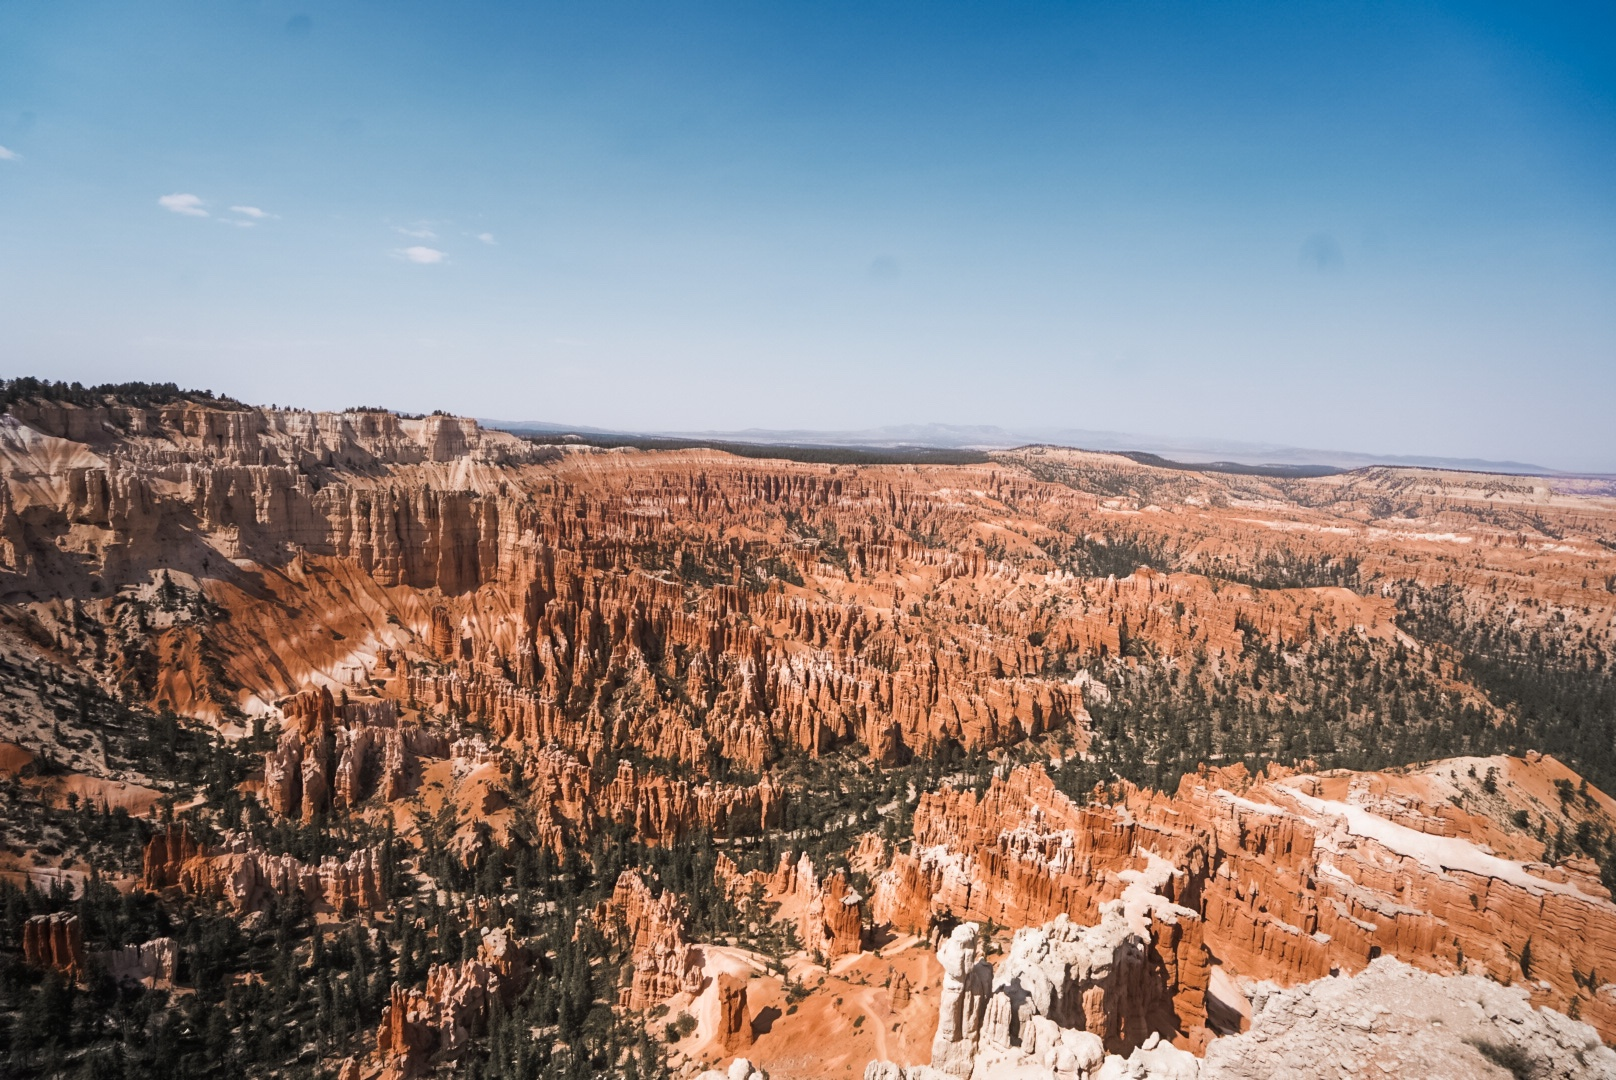 Bryce Canyon - landscape picture of canyon with pine trees